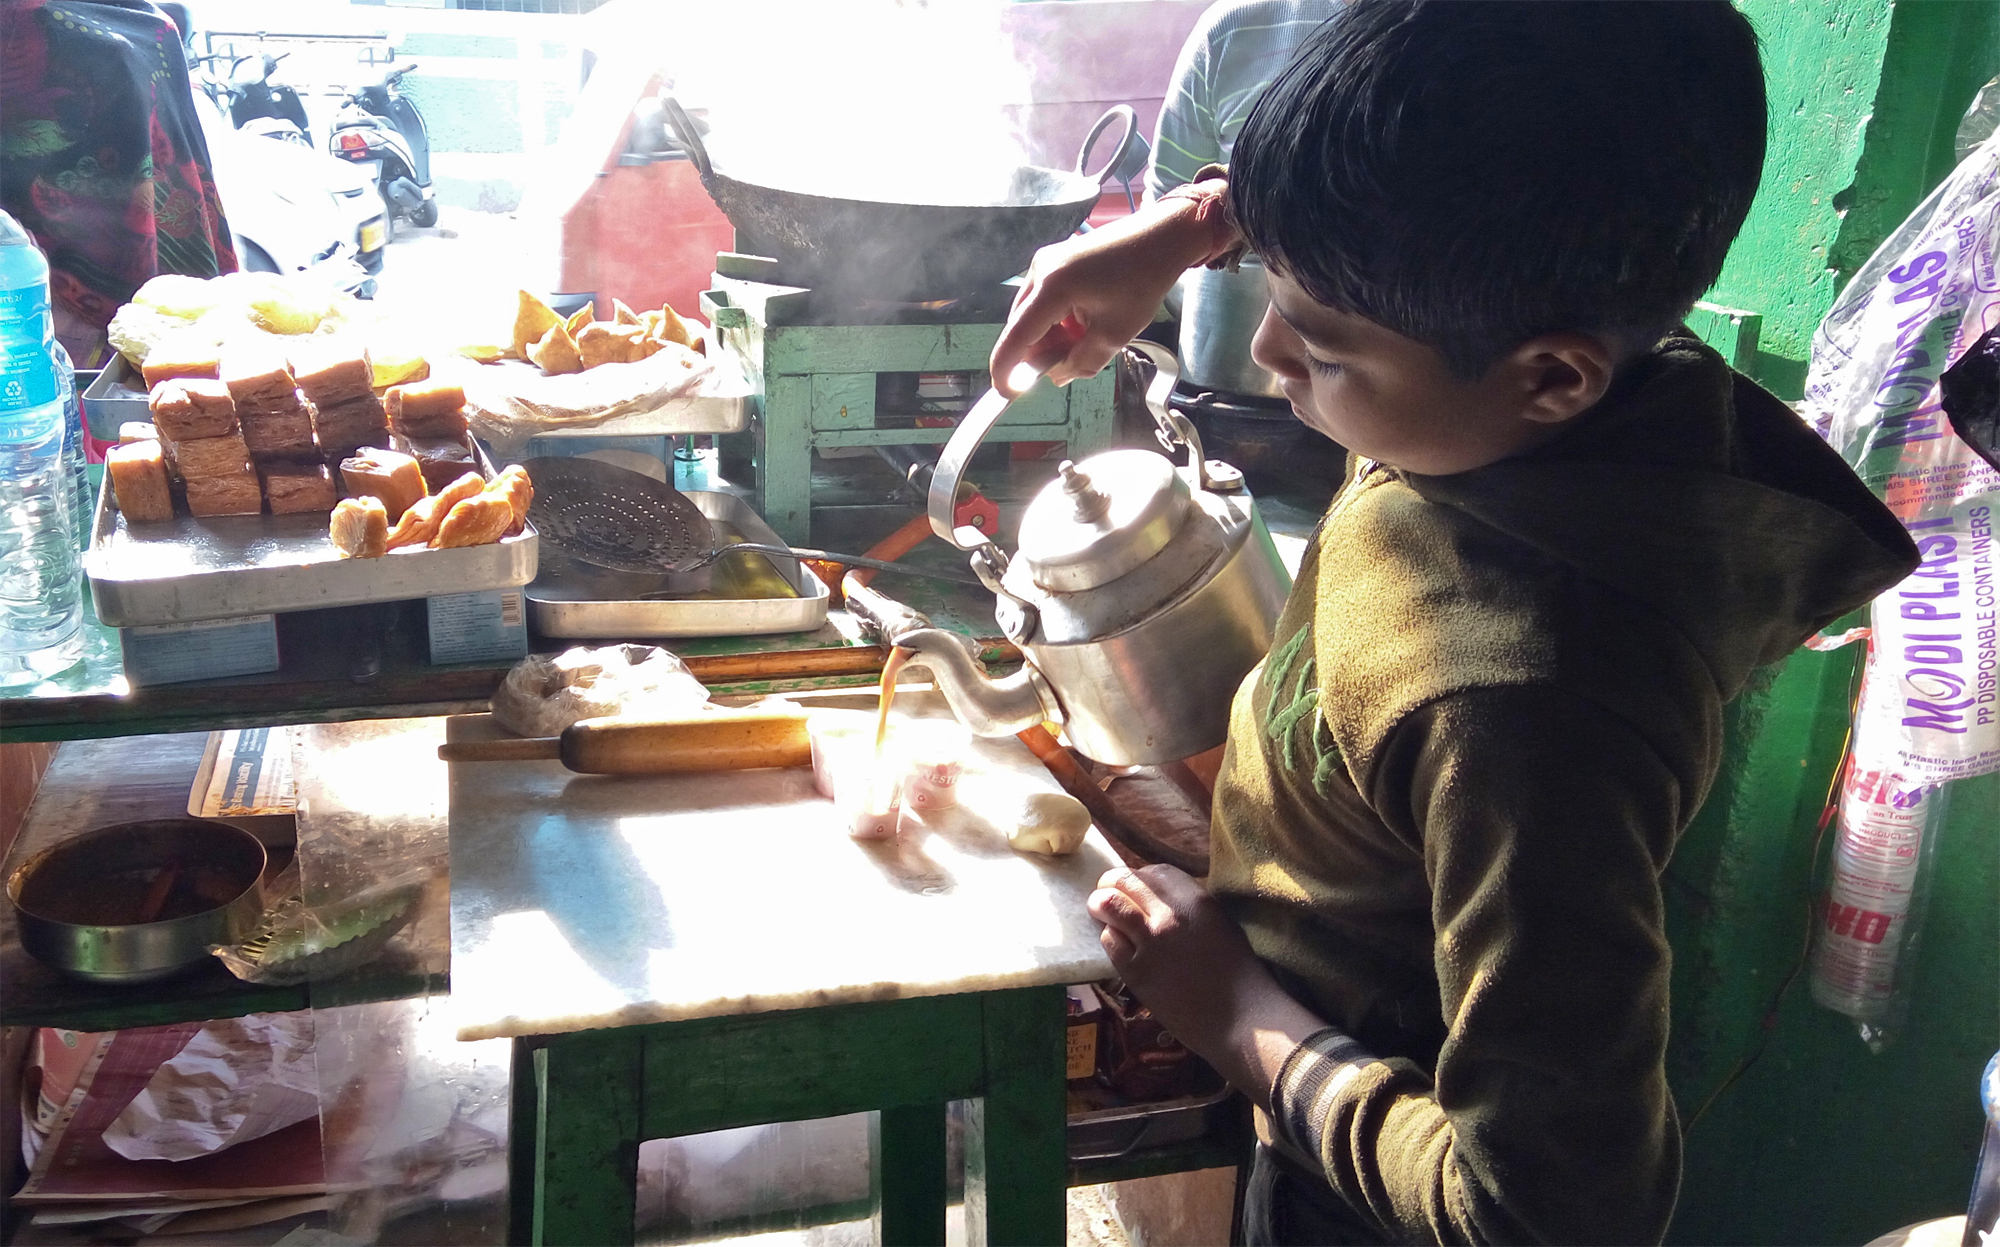 A boy is pouring Tea in tea containers to earn for him and his family.